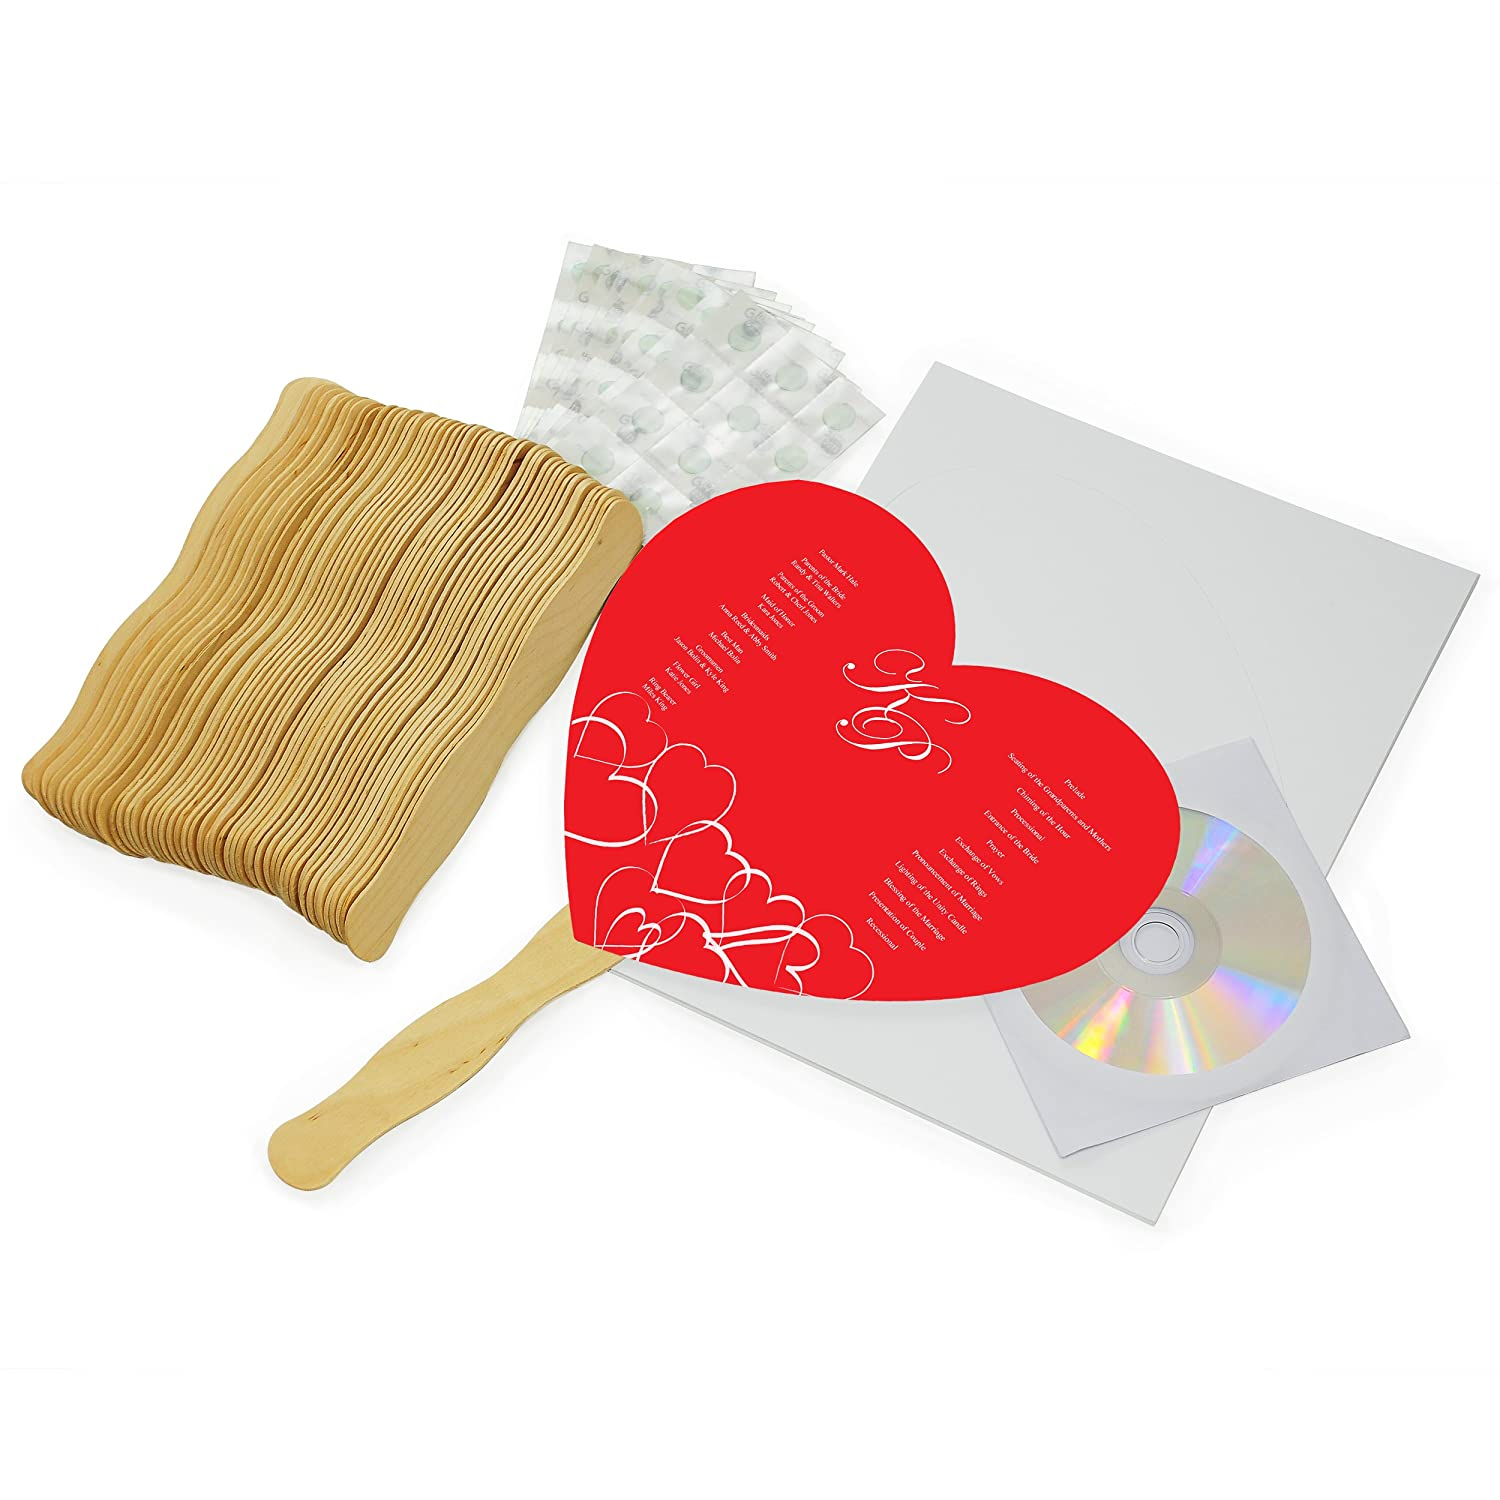 Amazon.com: Cathy\'s Concepts DIY Heart Fan Program Paper Kit Diy ...